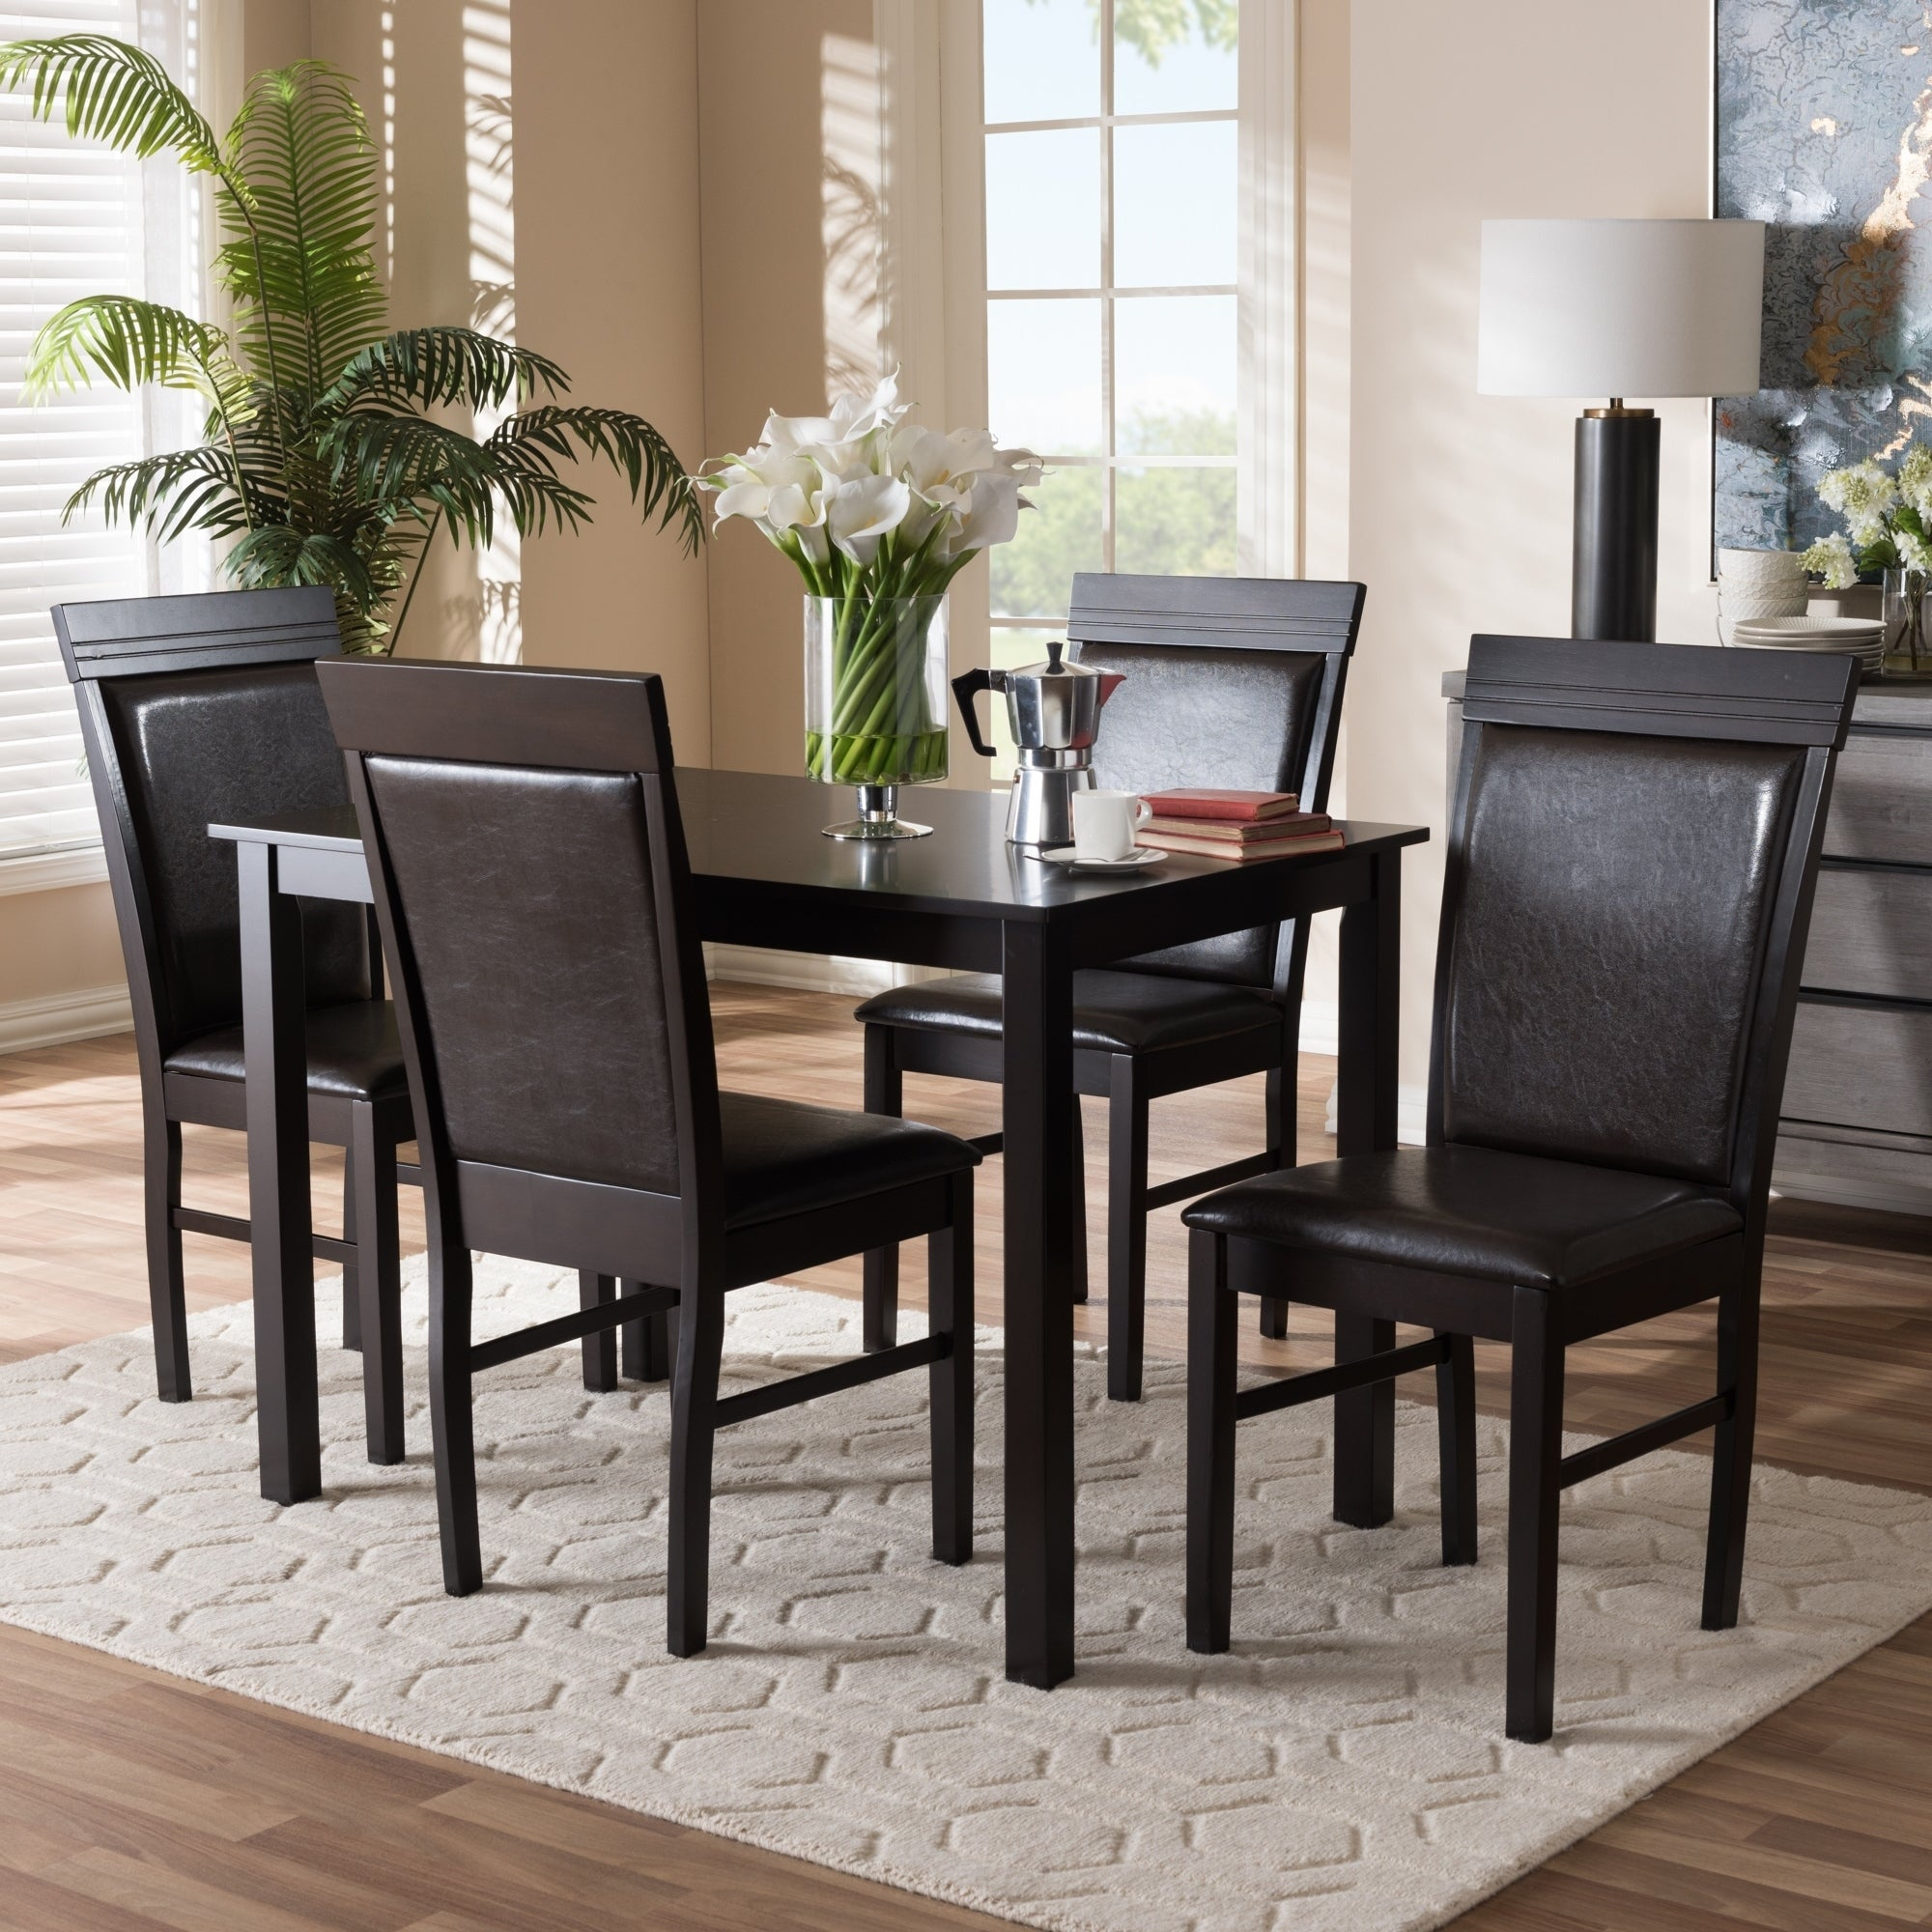 Buy 5 Piece Sets Kitchen & Dining Room Sets Online At Overstock In Current West Hill Family Table 3 Piece Dining Sets (View 5 of 20)